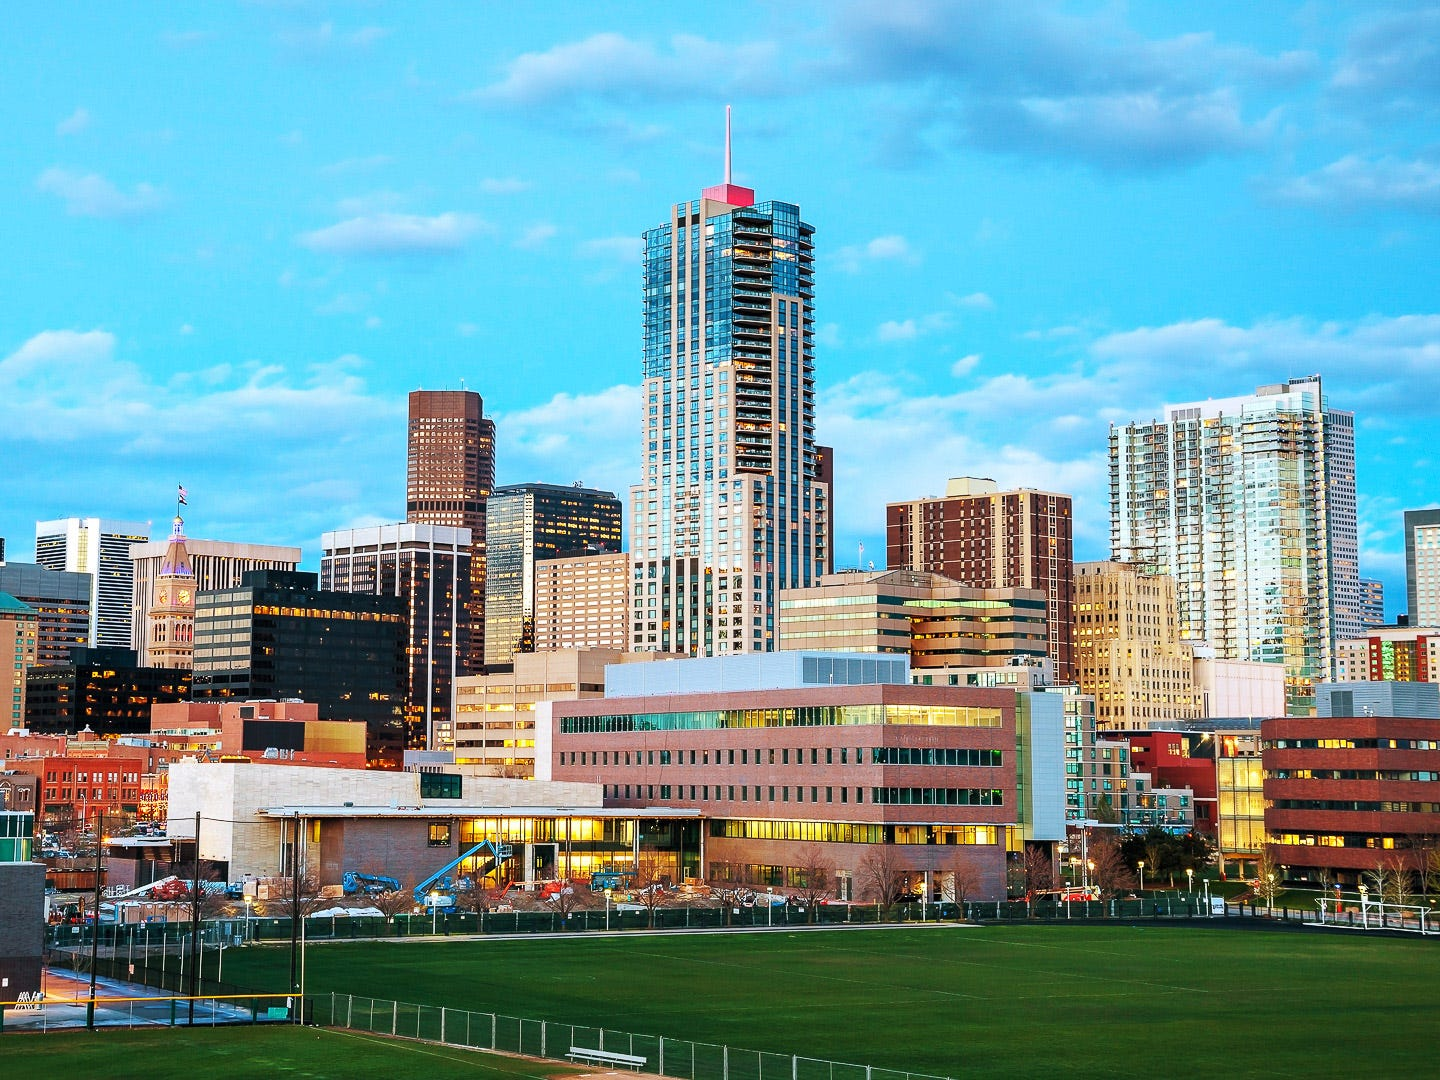 No. 10: Denver. Thanksgiving trip cost: $1,033.50. Christmas trip cost: $963. Although Denver is close to ski resorts, winter is the low season for tourism in the Mile High City. As a result, it's a good place for fairly cheap Christmas trips. Lodging in Denver is less expensive compared to costs in most of the U.S. destinations in this study. And, it's cheaper to fly from Atlanta or Los Angeles to Denver than it is to most other cities on GOBankingRates' list.